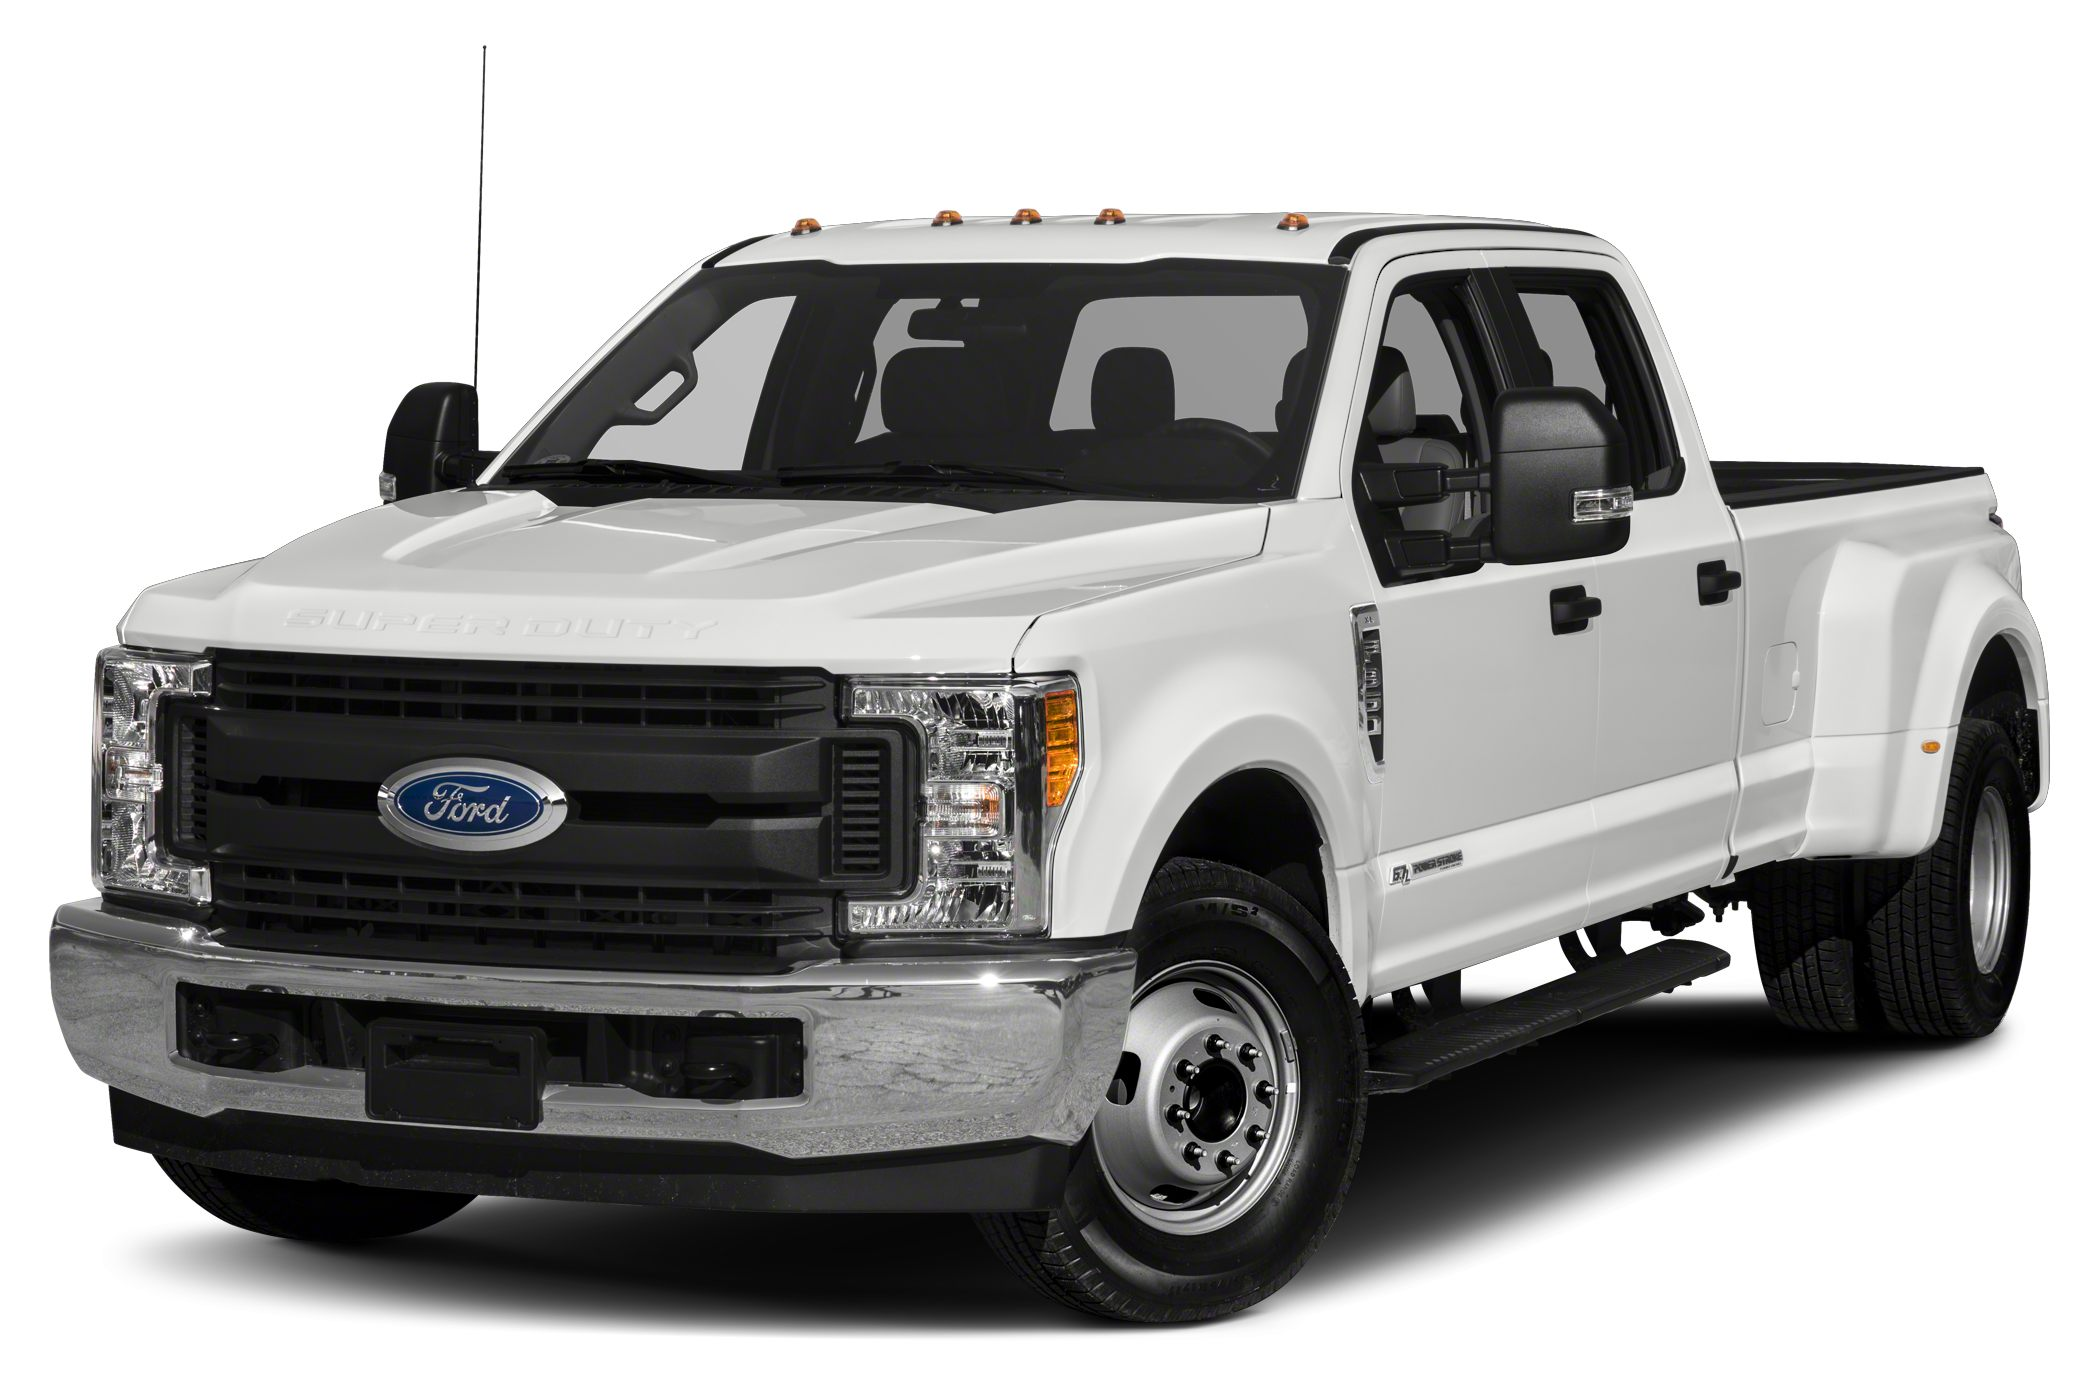 2017 Ford F-350 Super Duty We have some great specials here online Dont forget to mention interne